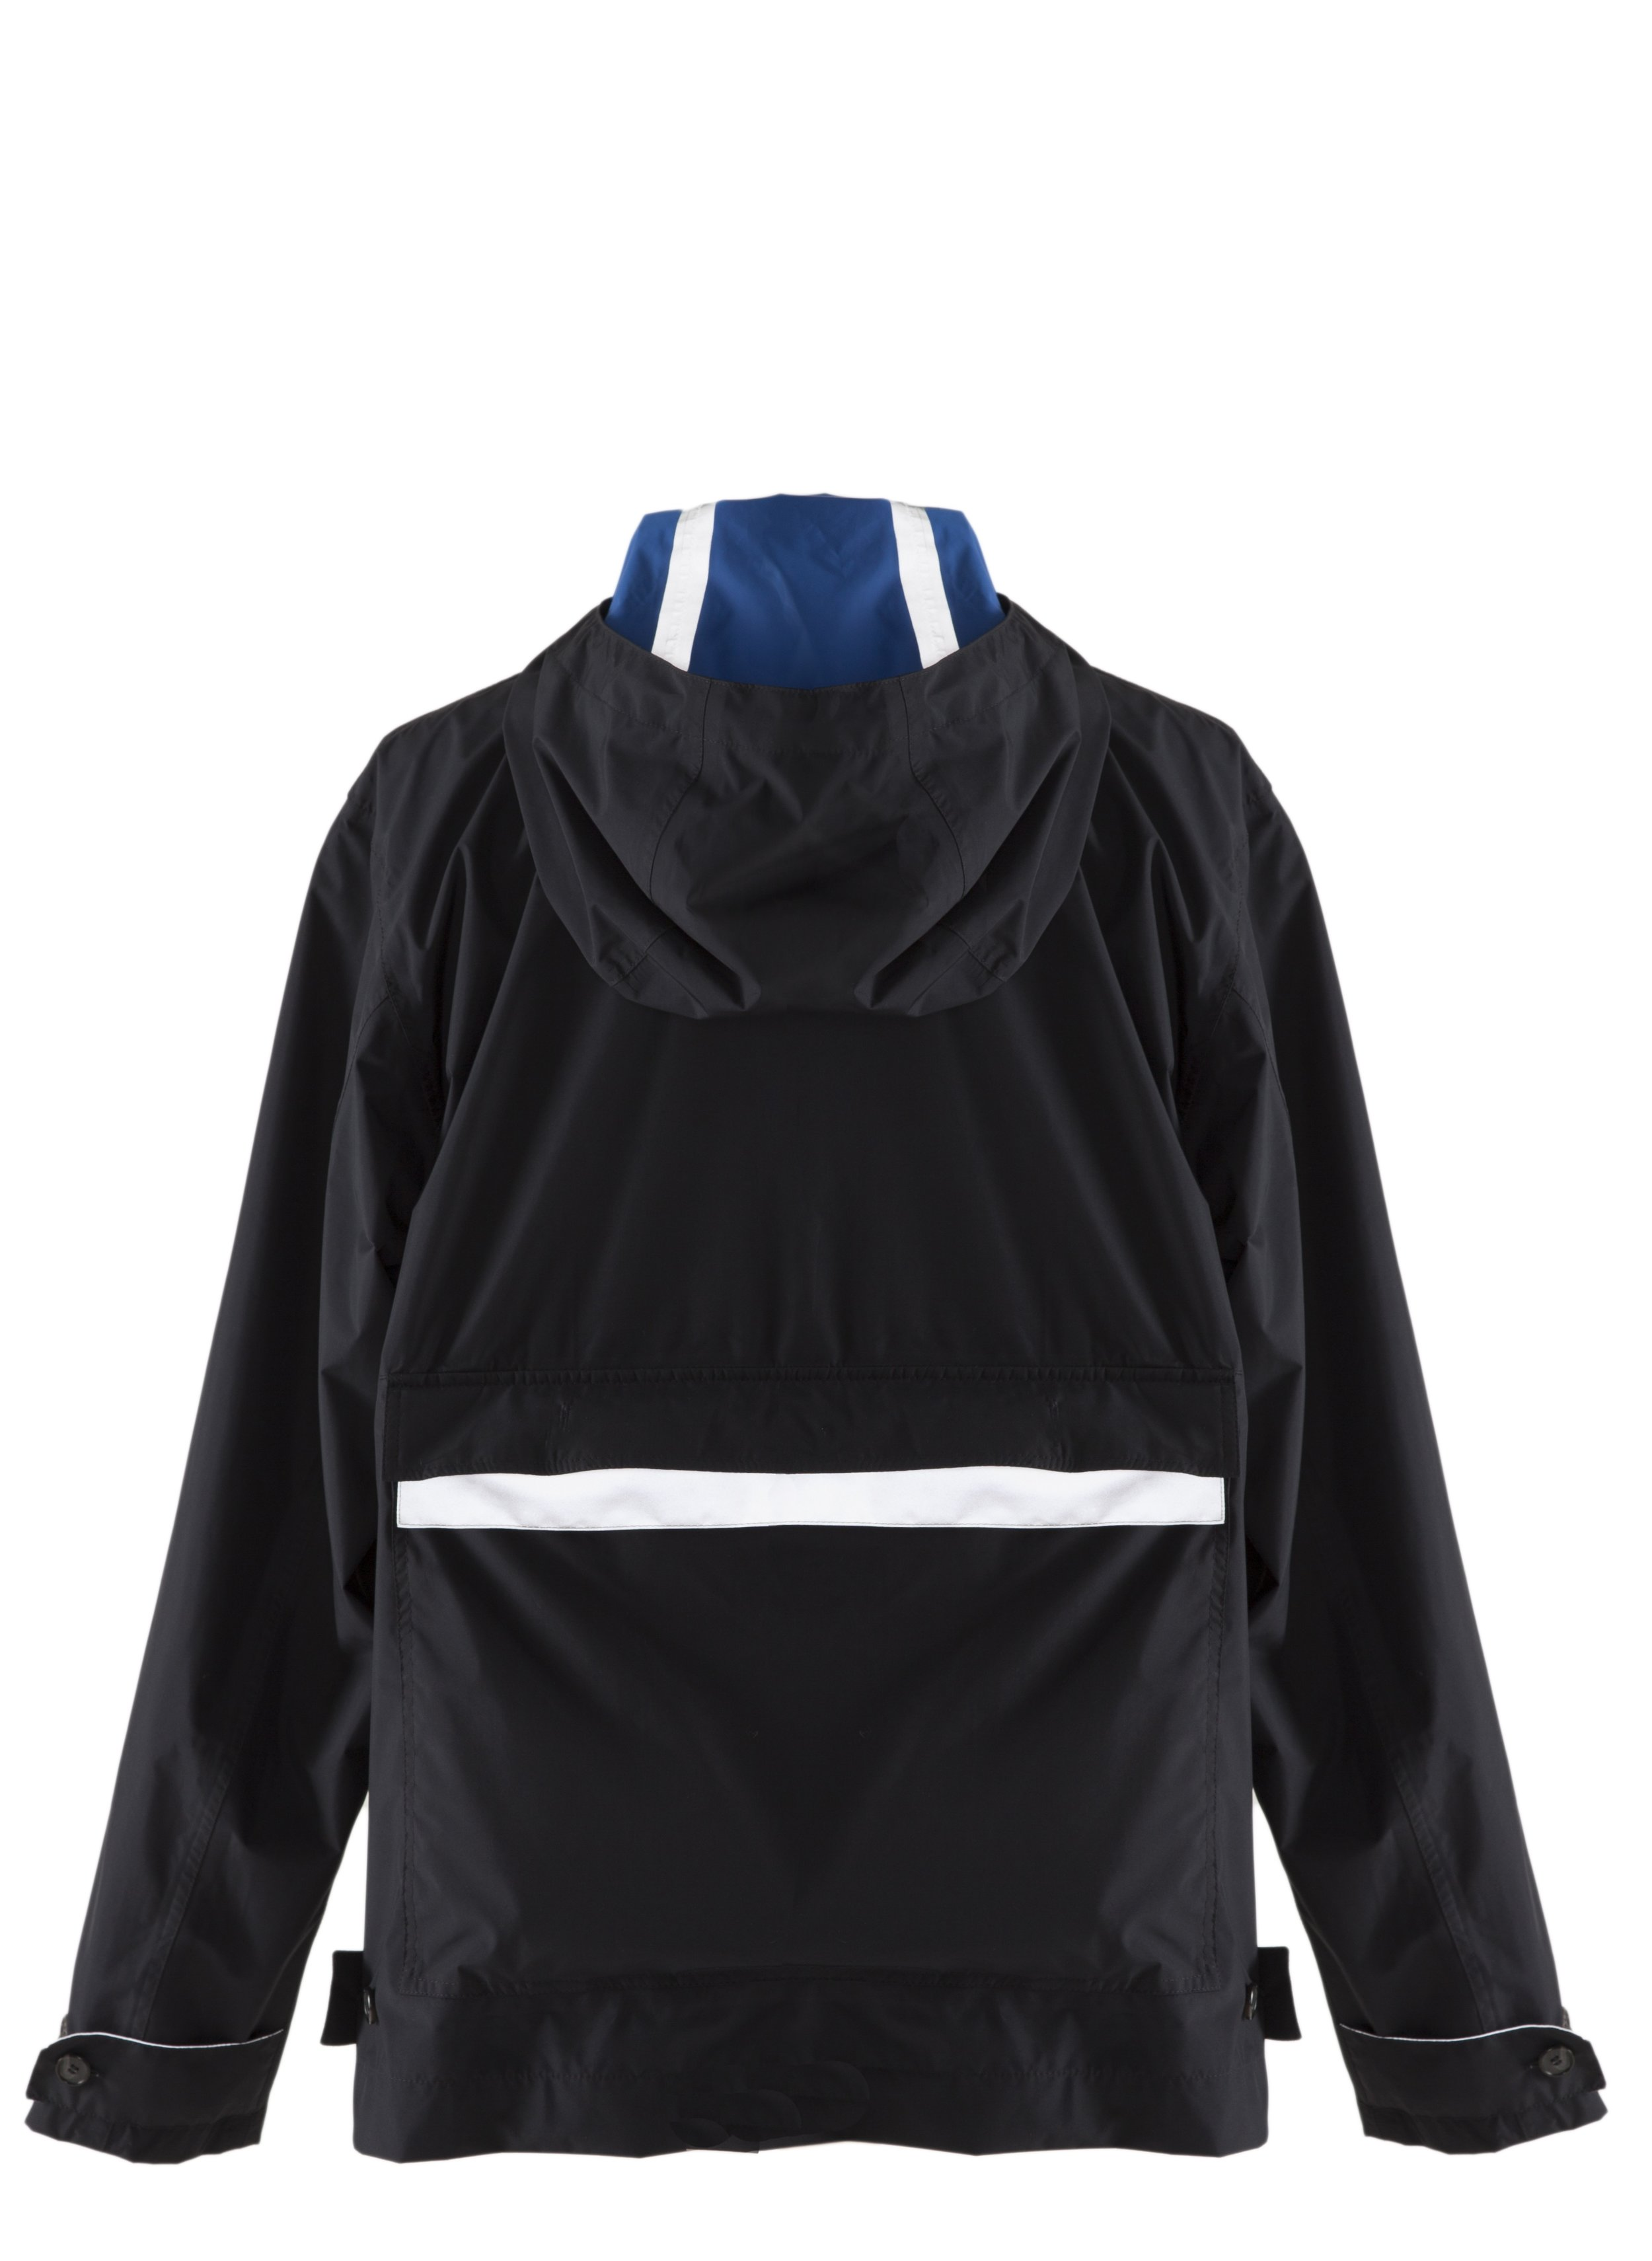 V2 - 7 Jacket Back - Reflective.jpg